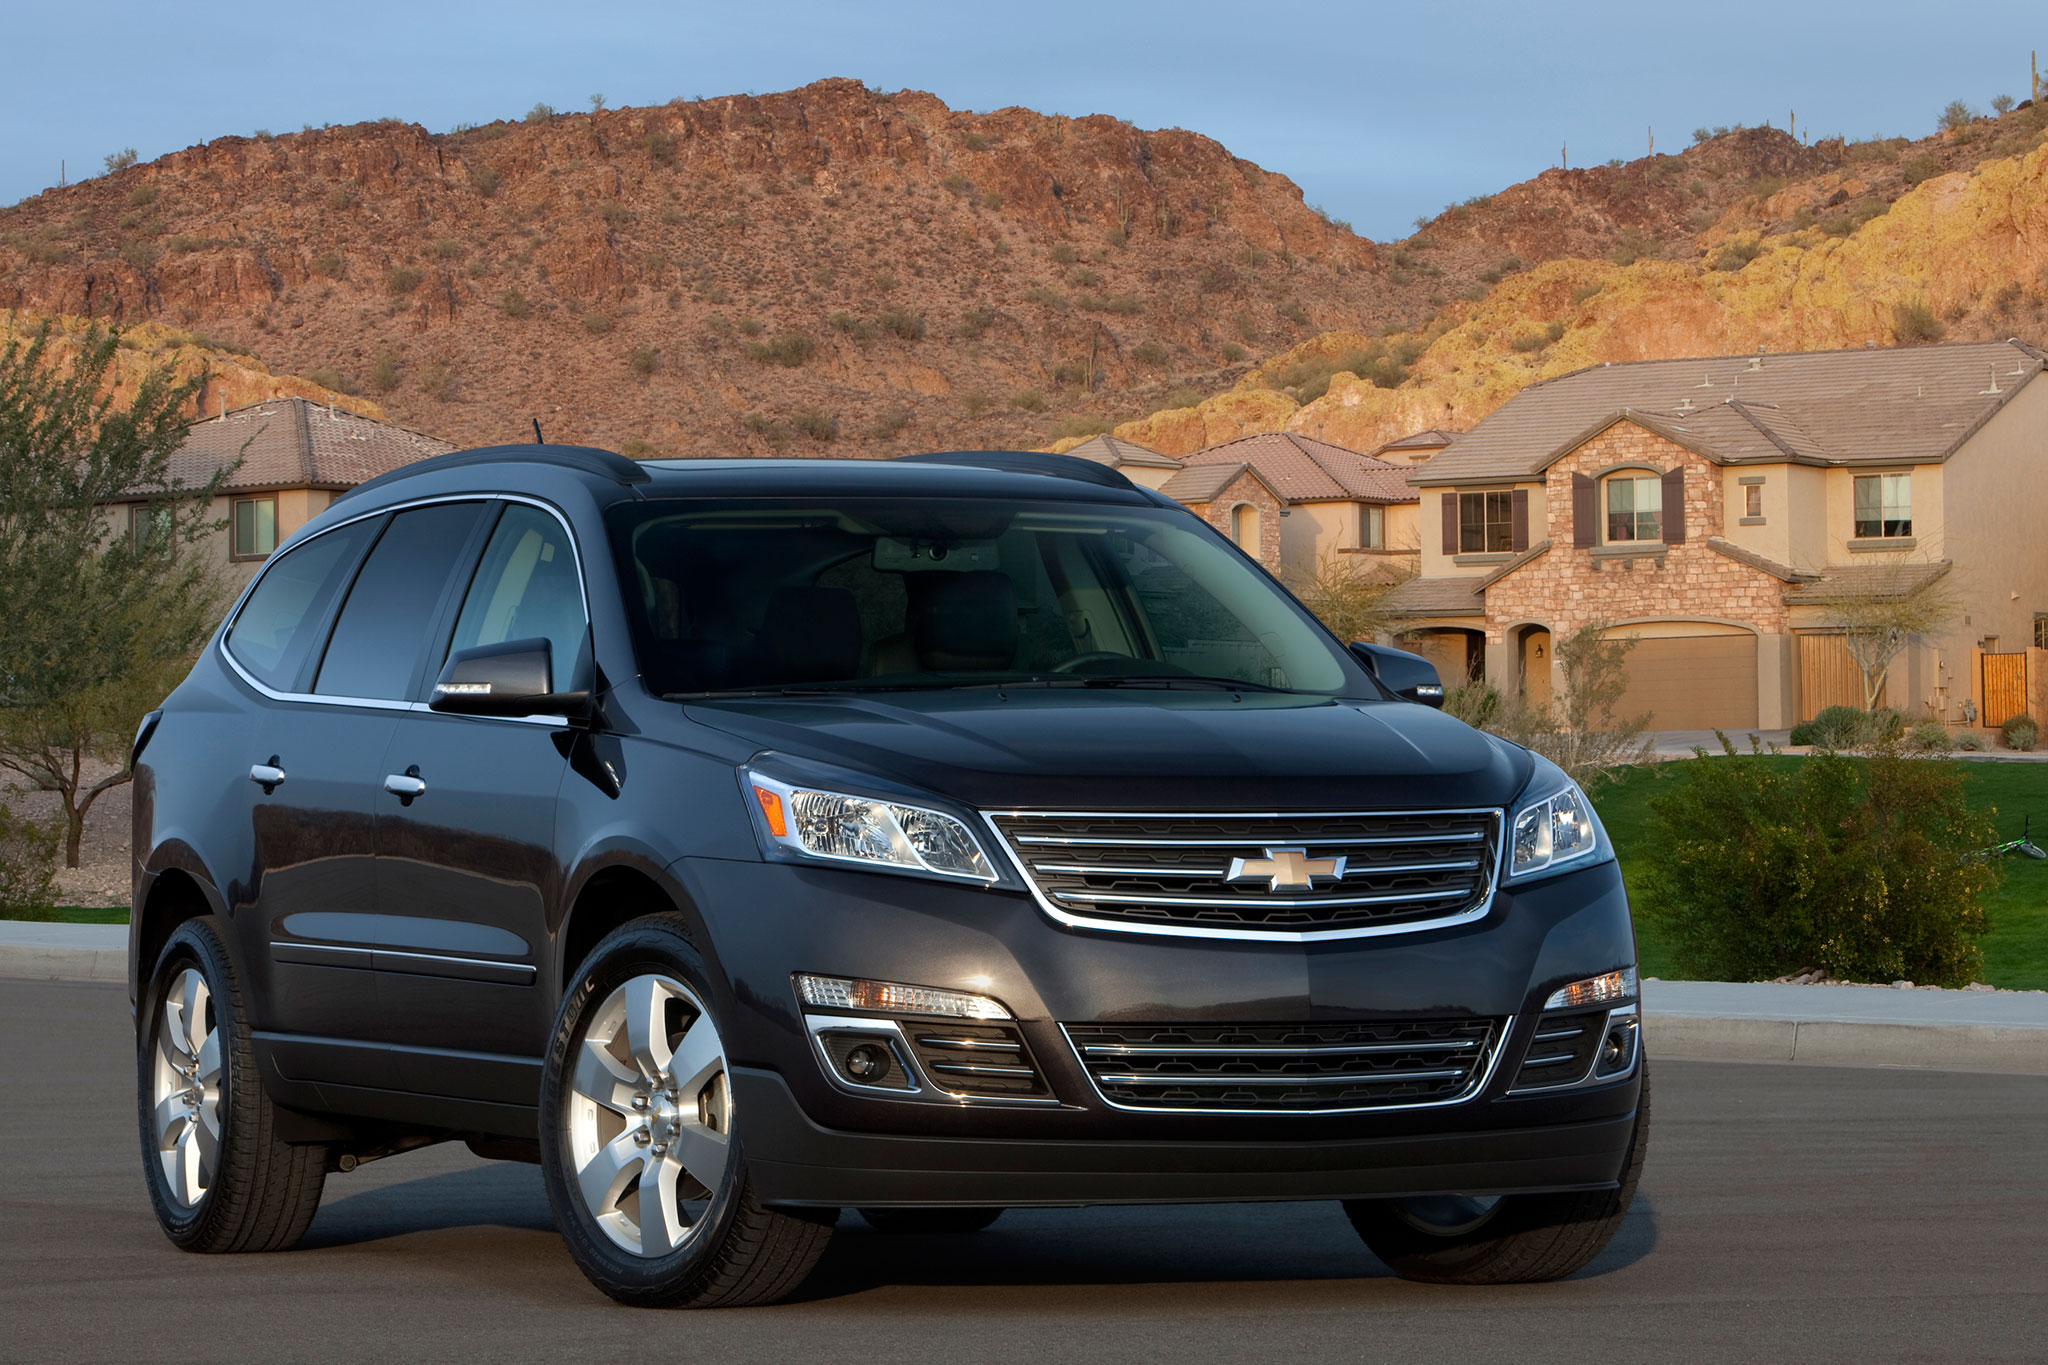 reviews photo chevrolet original car review and diesel s driver drive first equinox